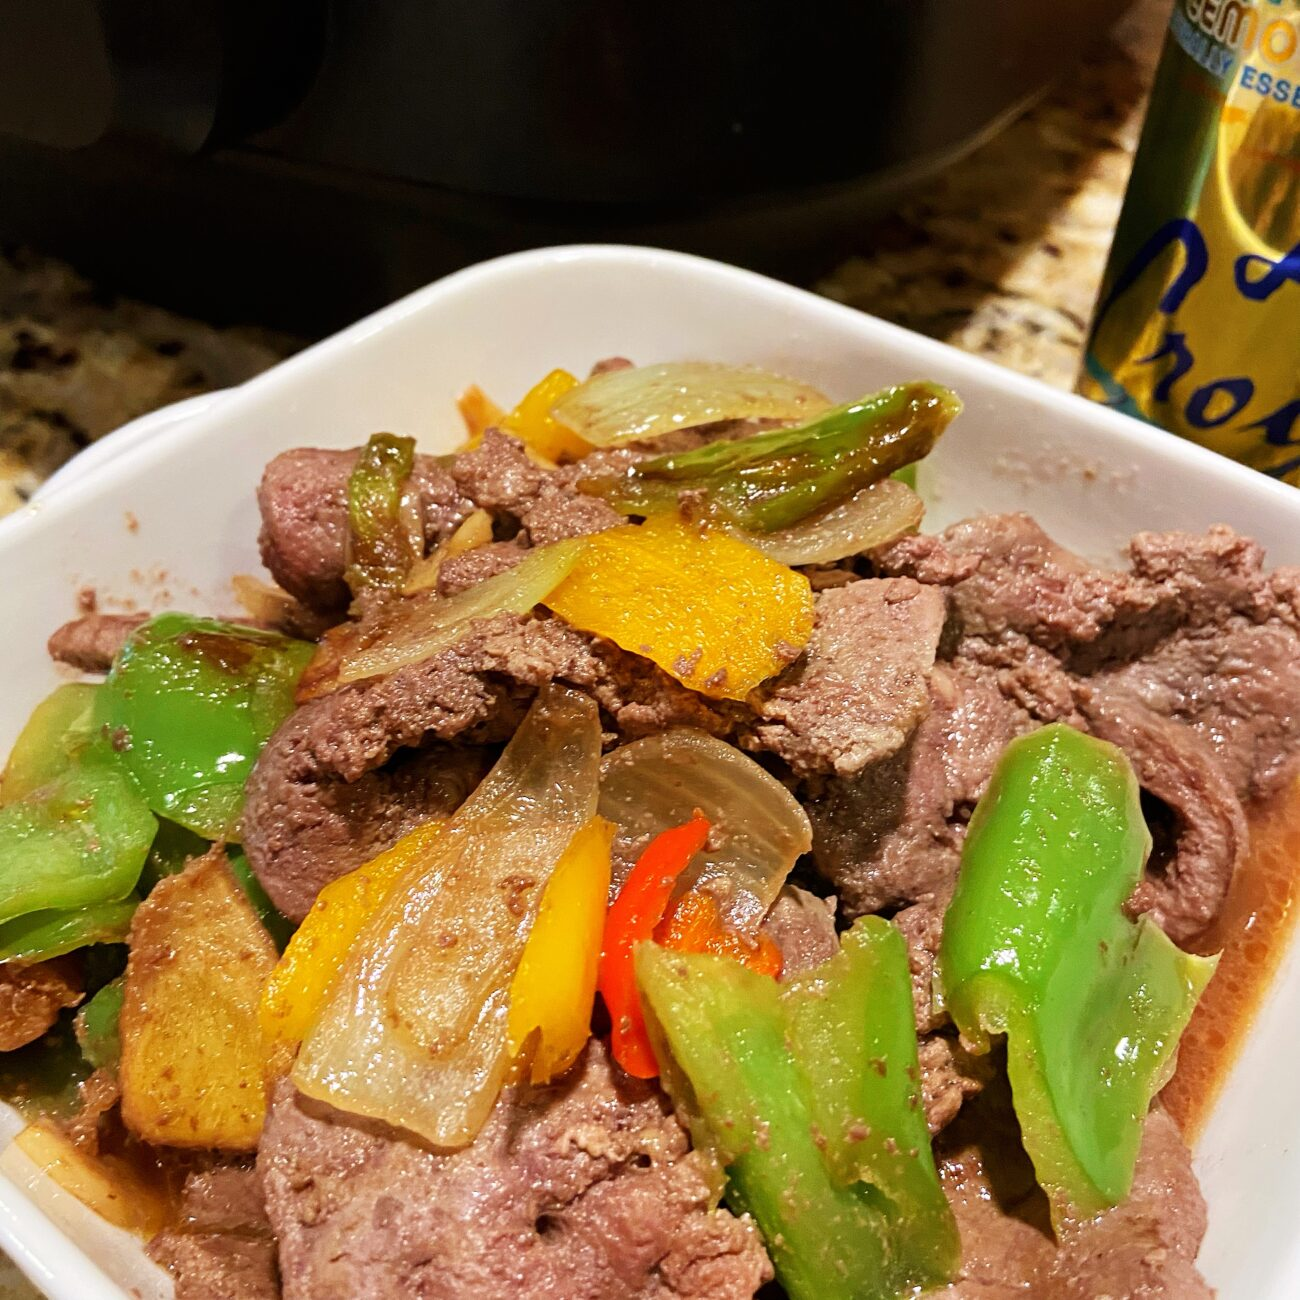 Grilled Calf Liver with Onion and Pepper